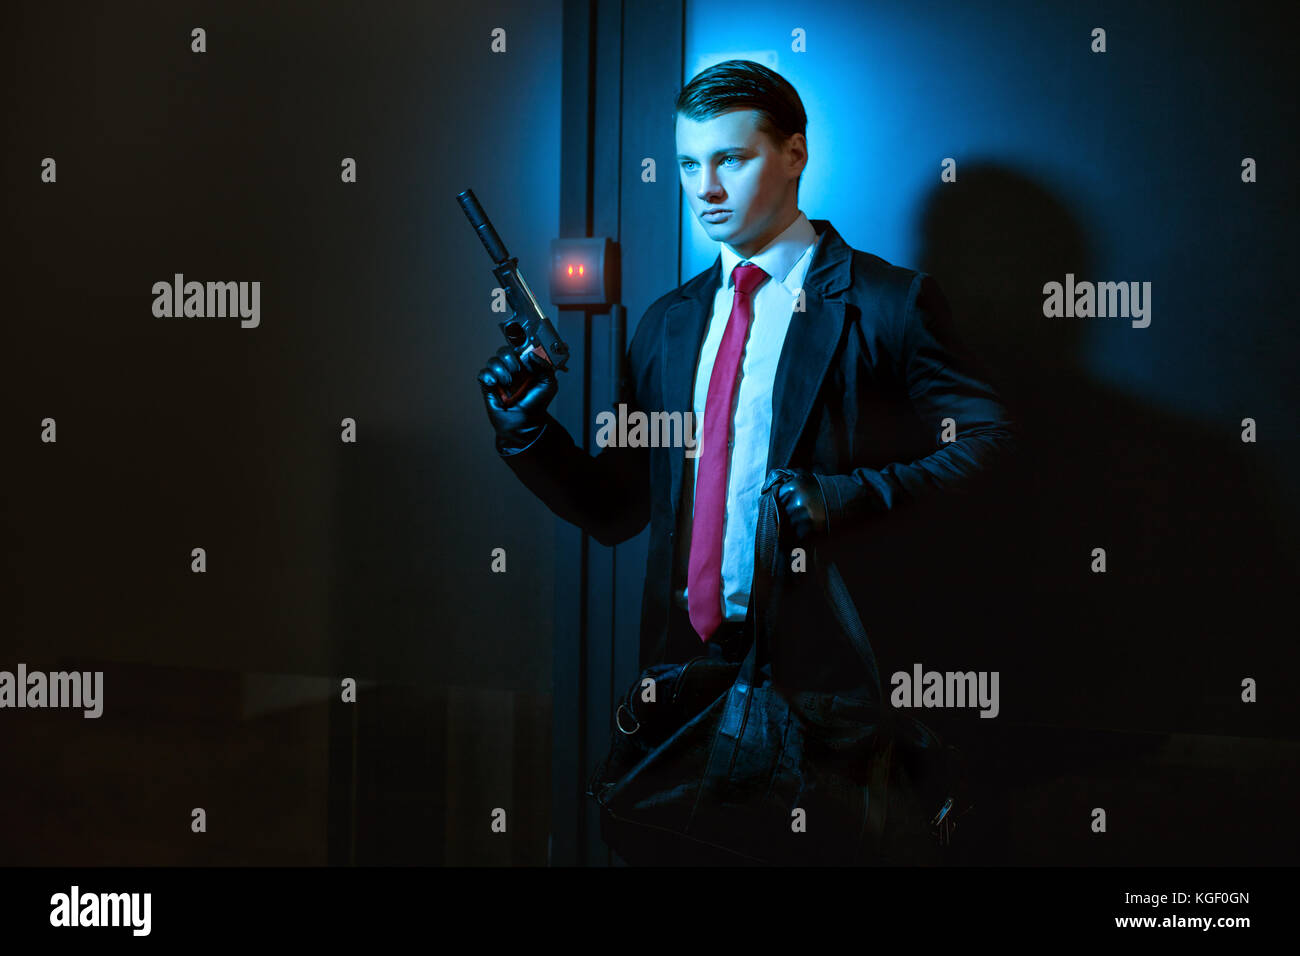 Professional man is a murderer, in his hand a pistol with a silencer. - Stock Image